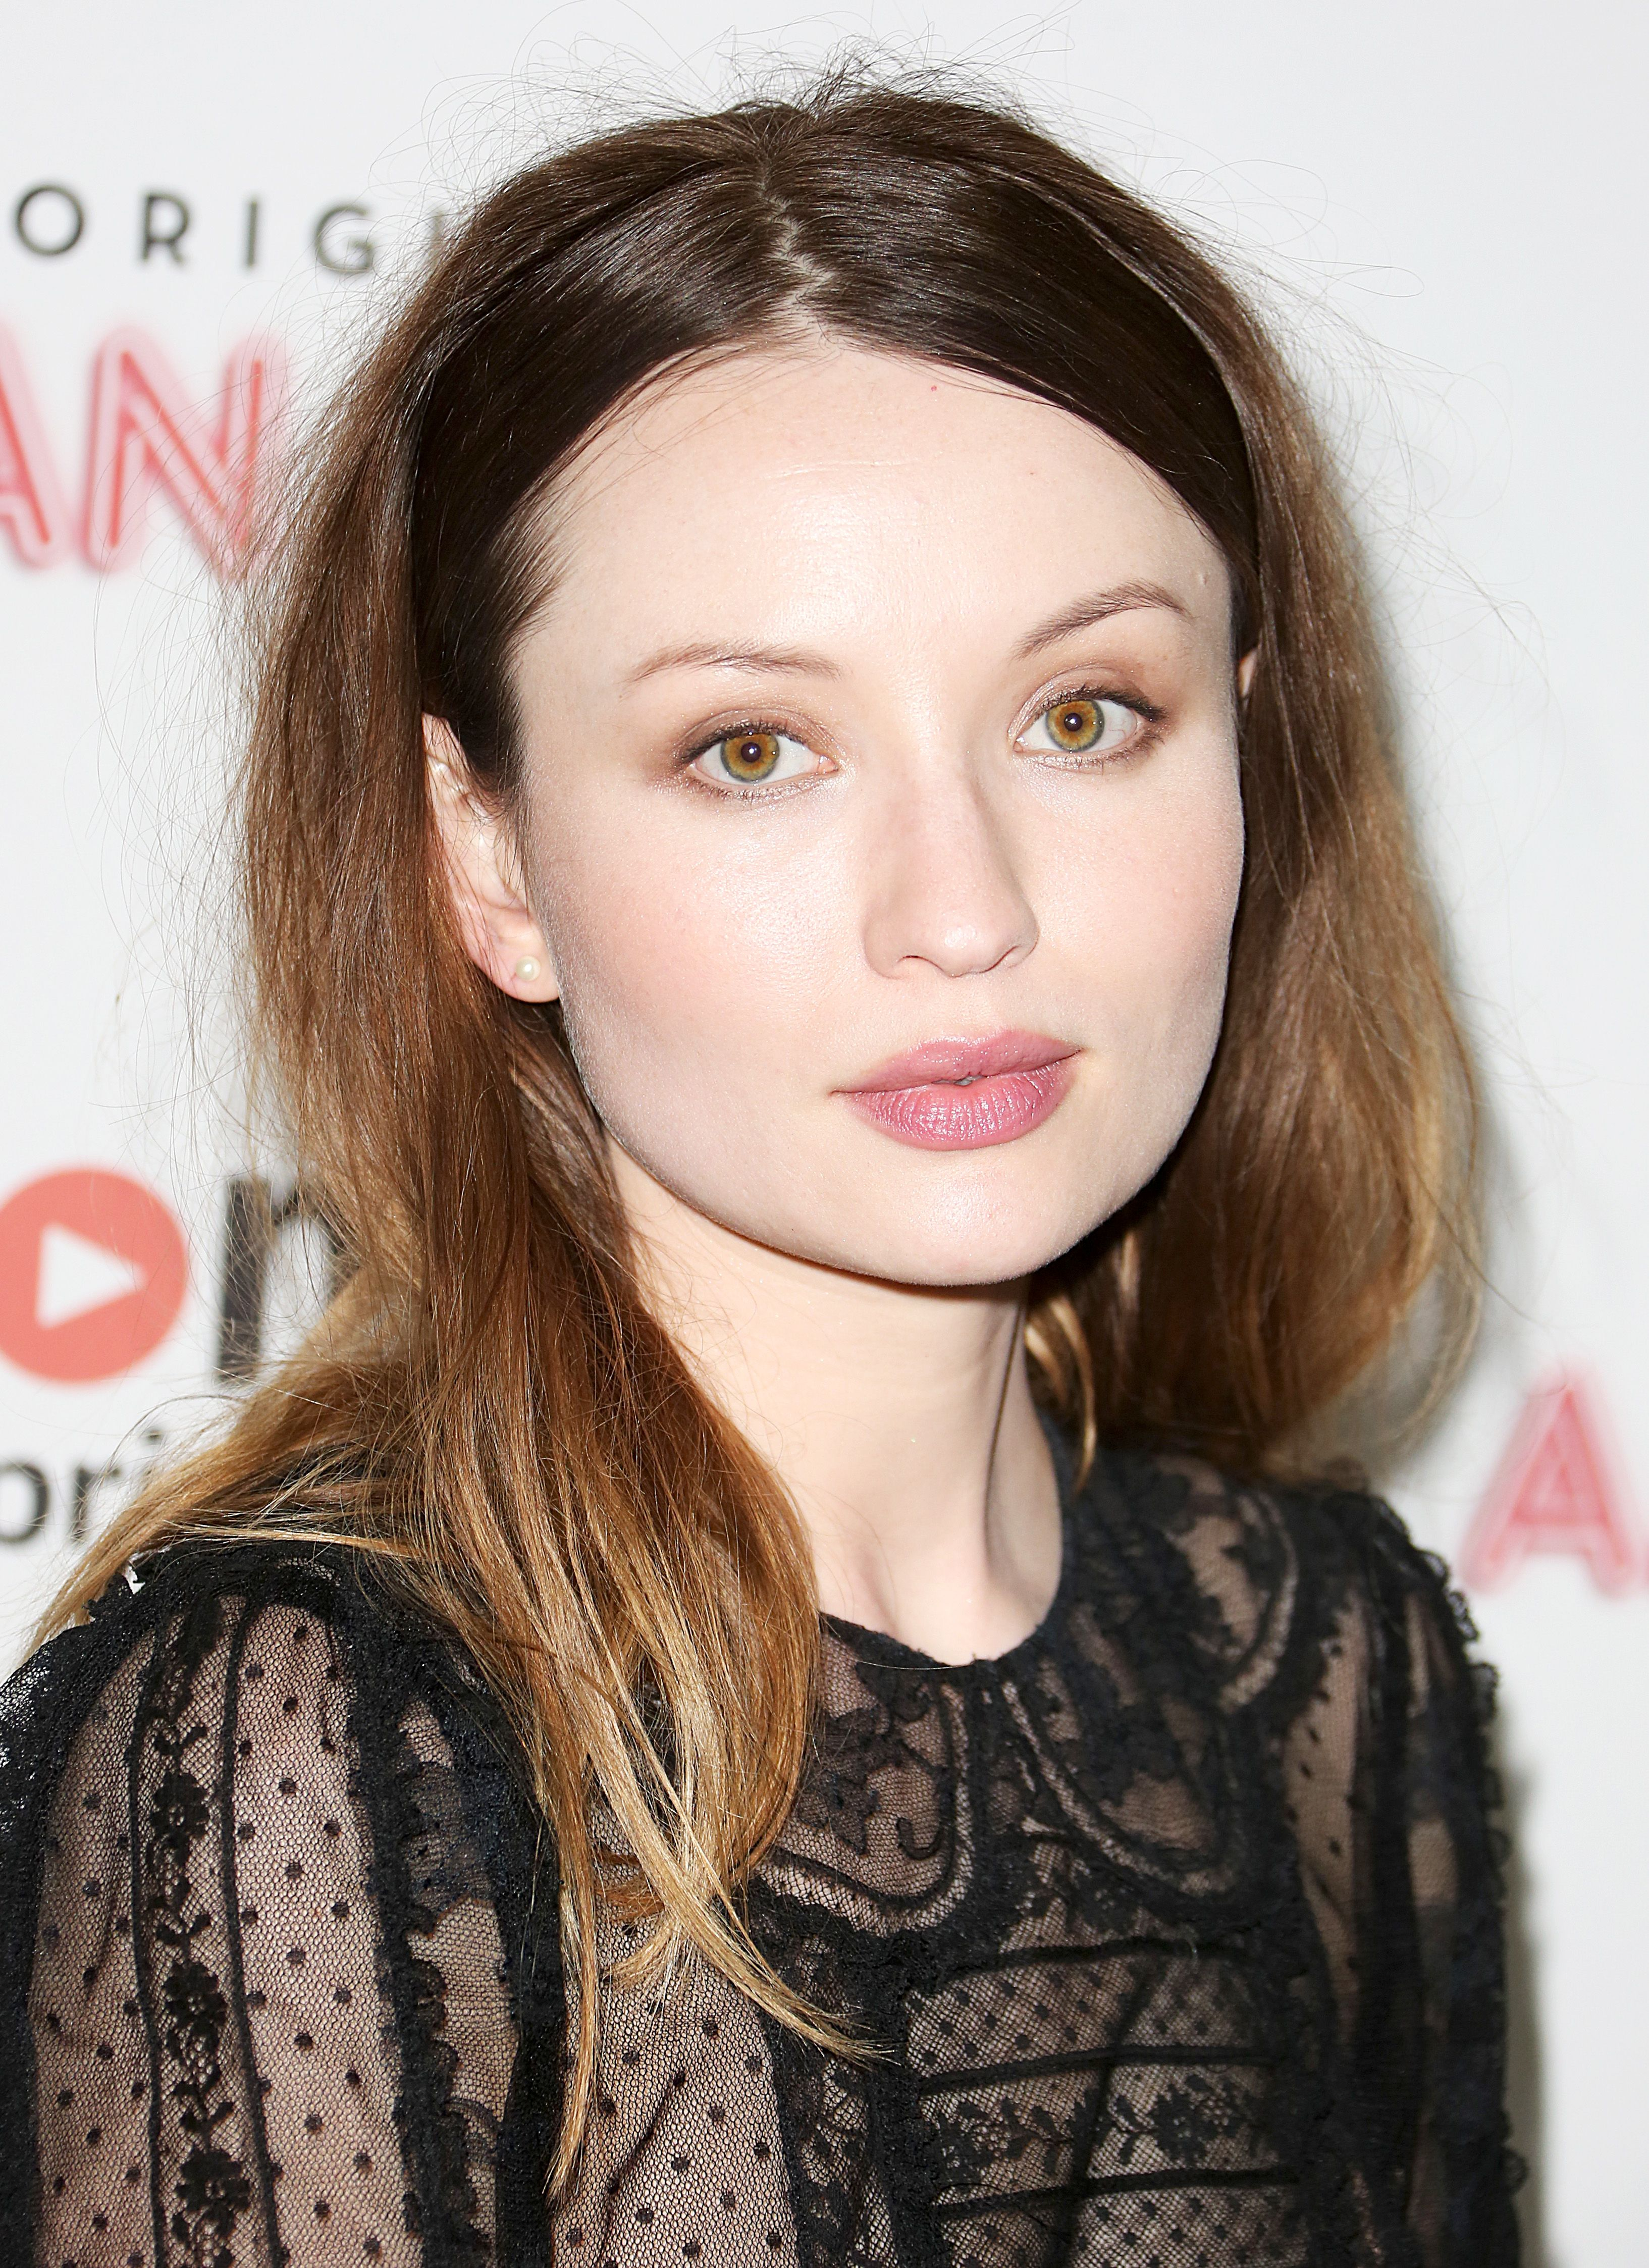 630925411e98 April 06 -  American Gods  UK TV premiere in London - Emily Browning  28129~0 - Emily Browning Online